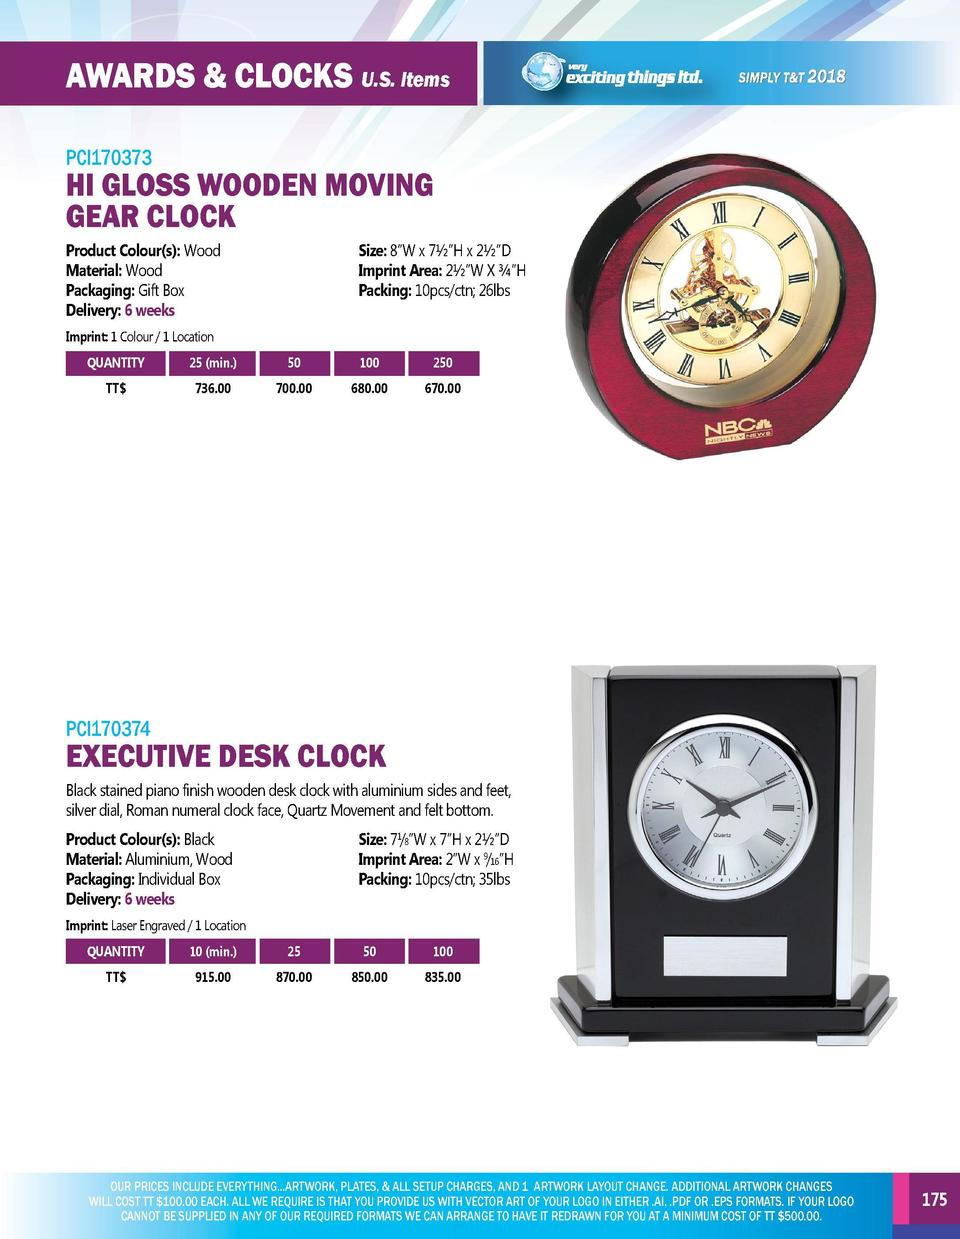 AWARDS   CLOCKS U.S. Items  AWARDS   CLOCKS U.S. Items  PCI170371  PCI170373  LEXUS AWARD  HI GLOSS WOODEN MOVING GEAR CLO...